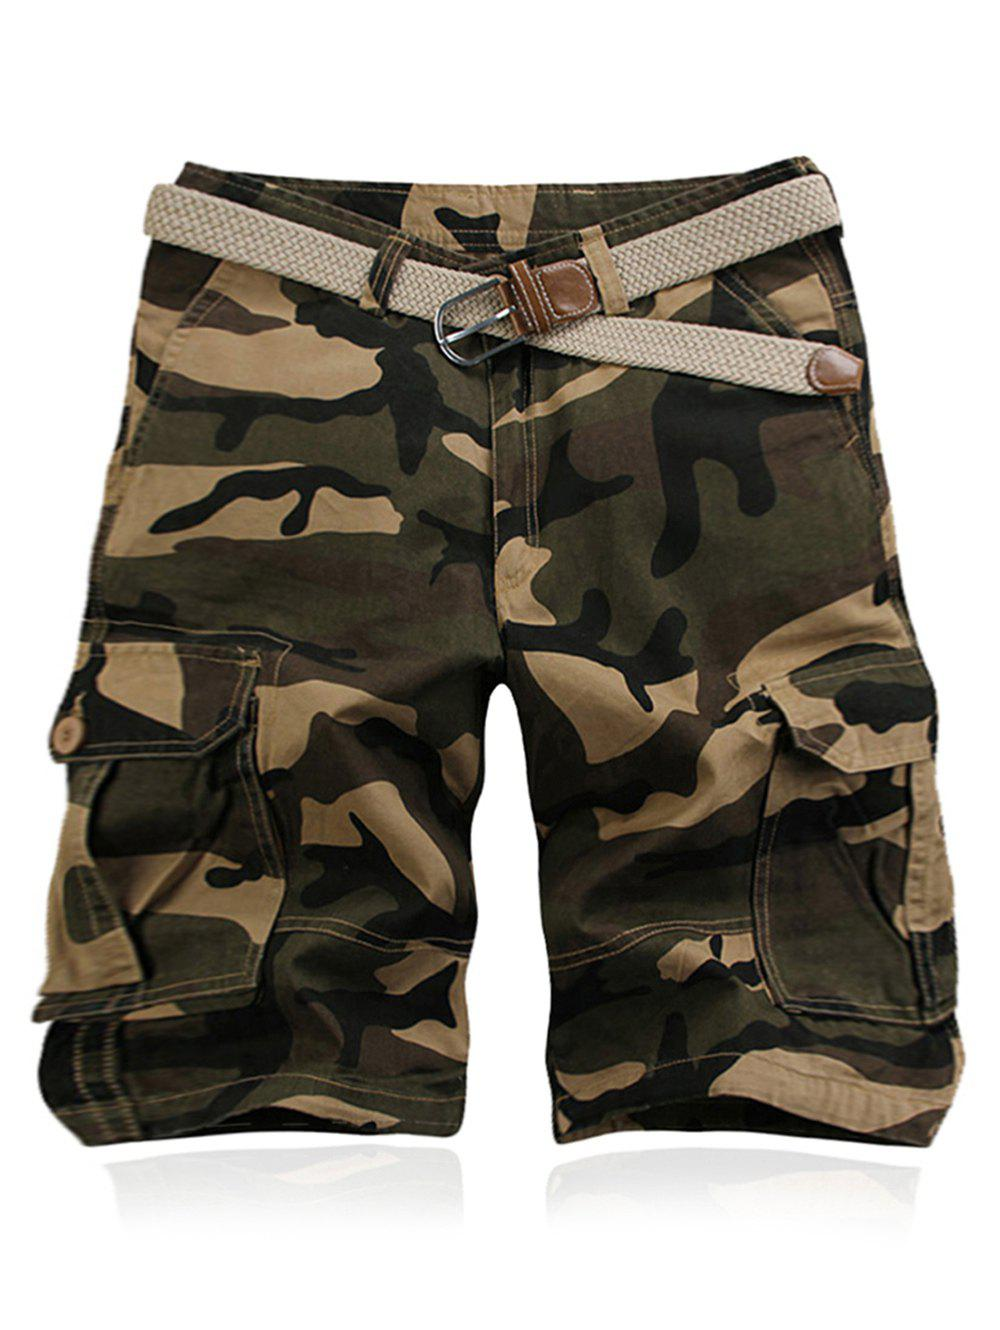 Shorts cargo de style militaire Jambe droite Multi-Pocket Camo Zipper Fly Men - Kaki 36